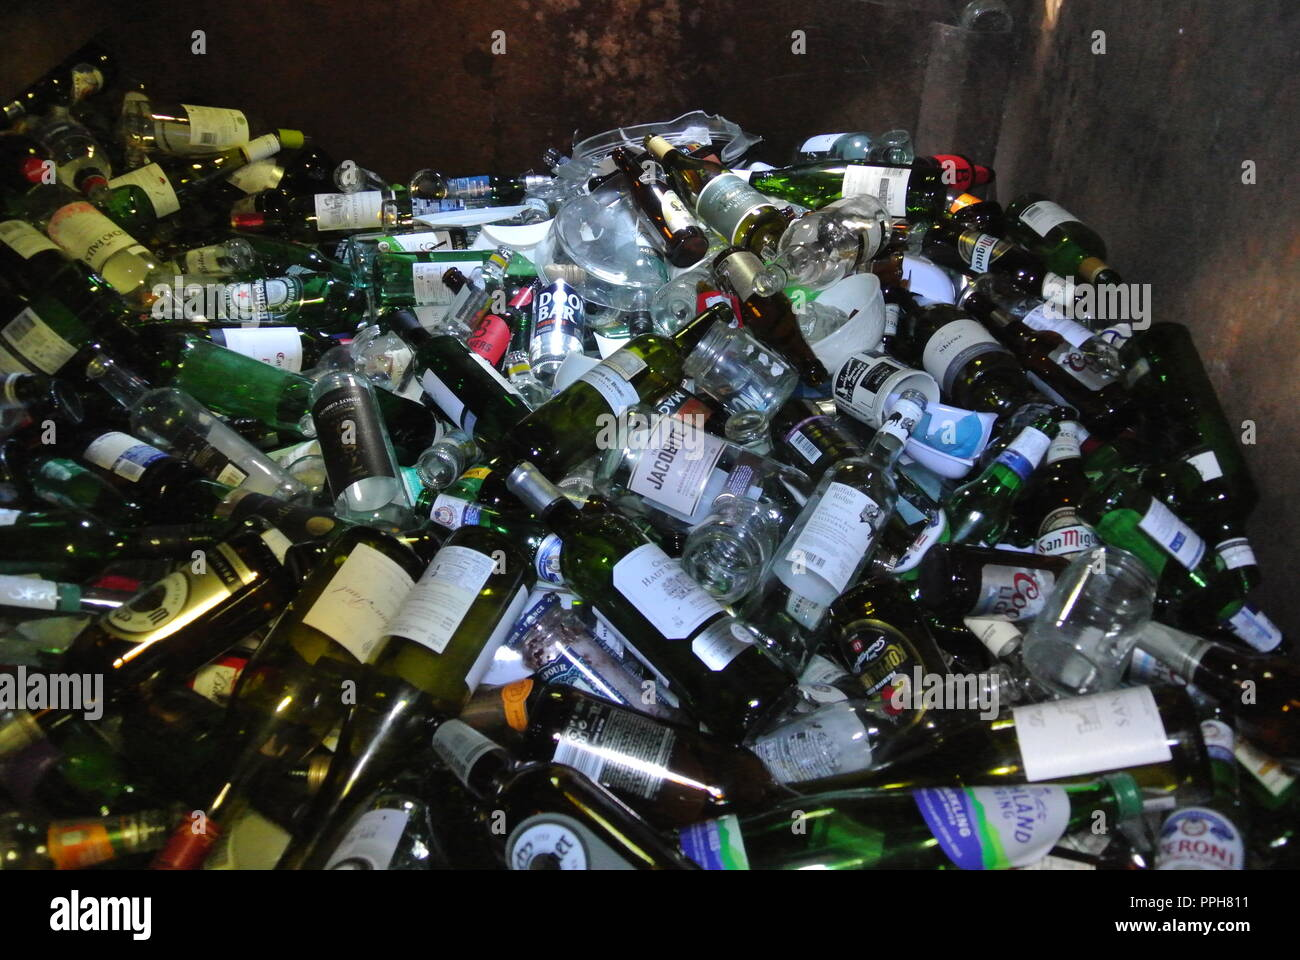 Glass bottles inside a bottle bank ready for recycling in England. - Stock Image